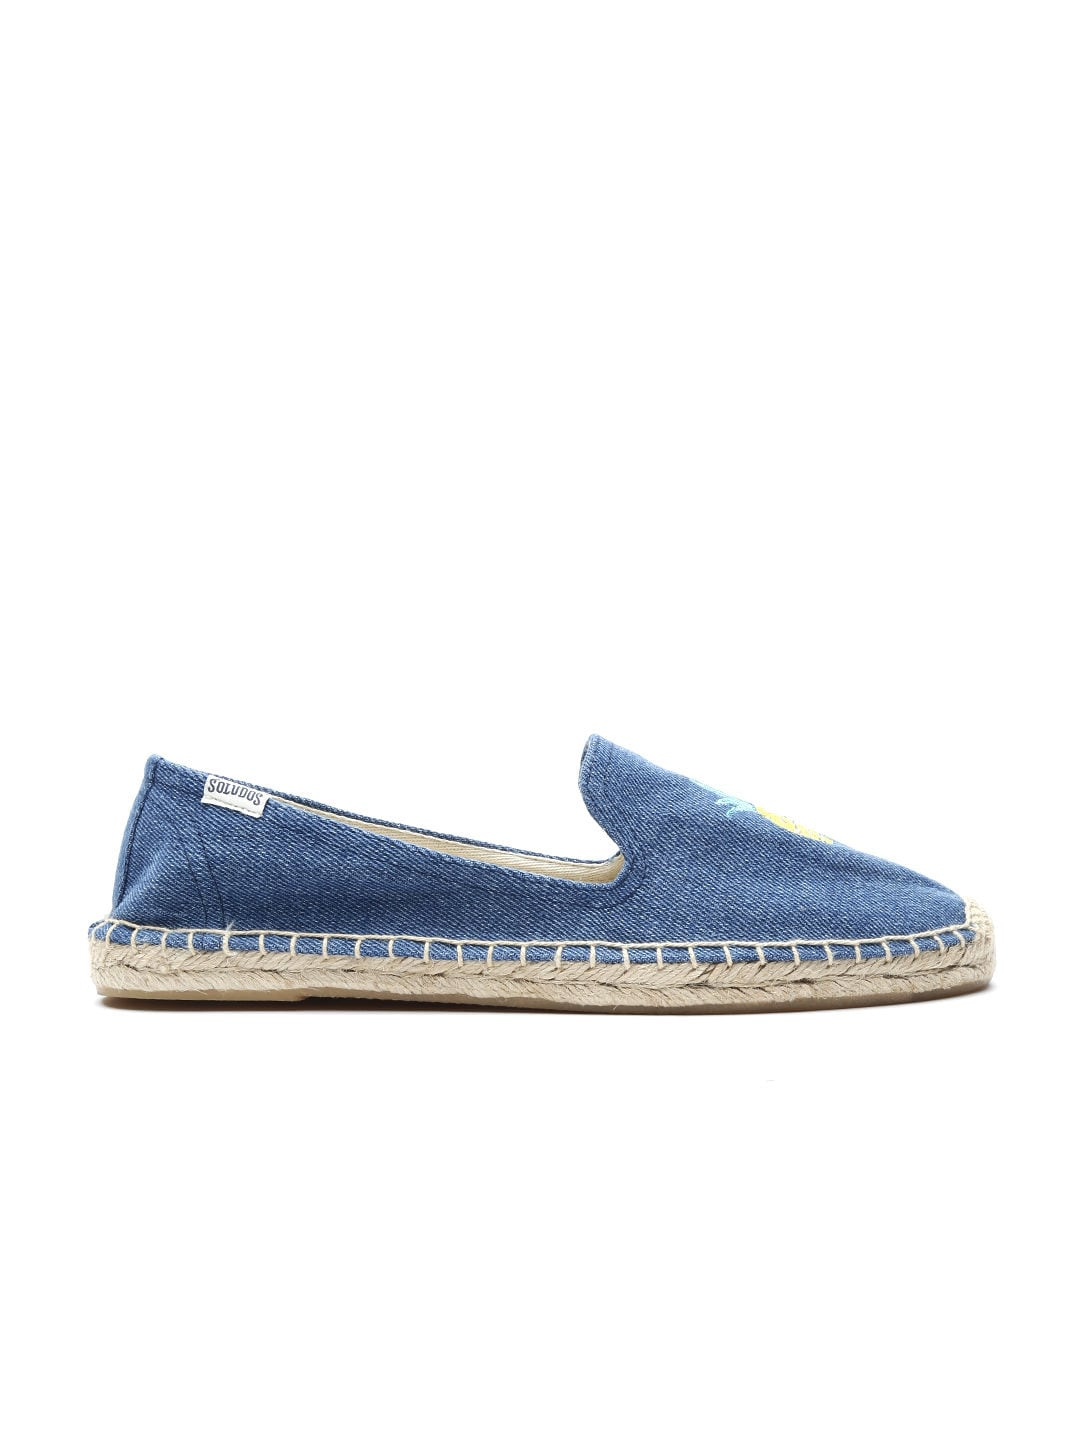 Soludos Women Blue Embroidered Espadrilles